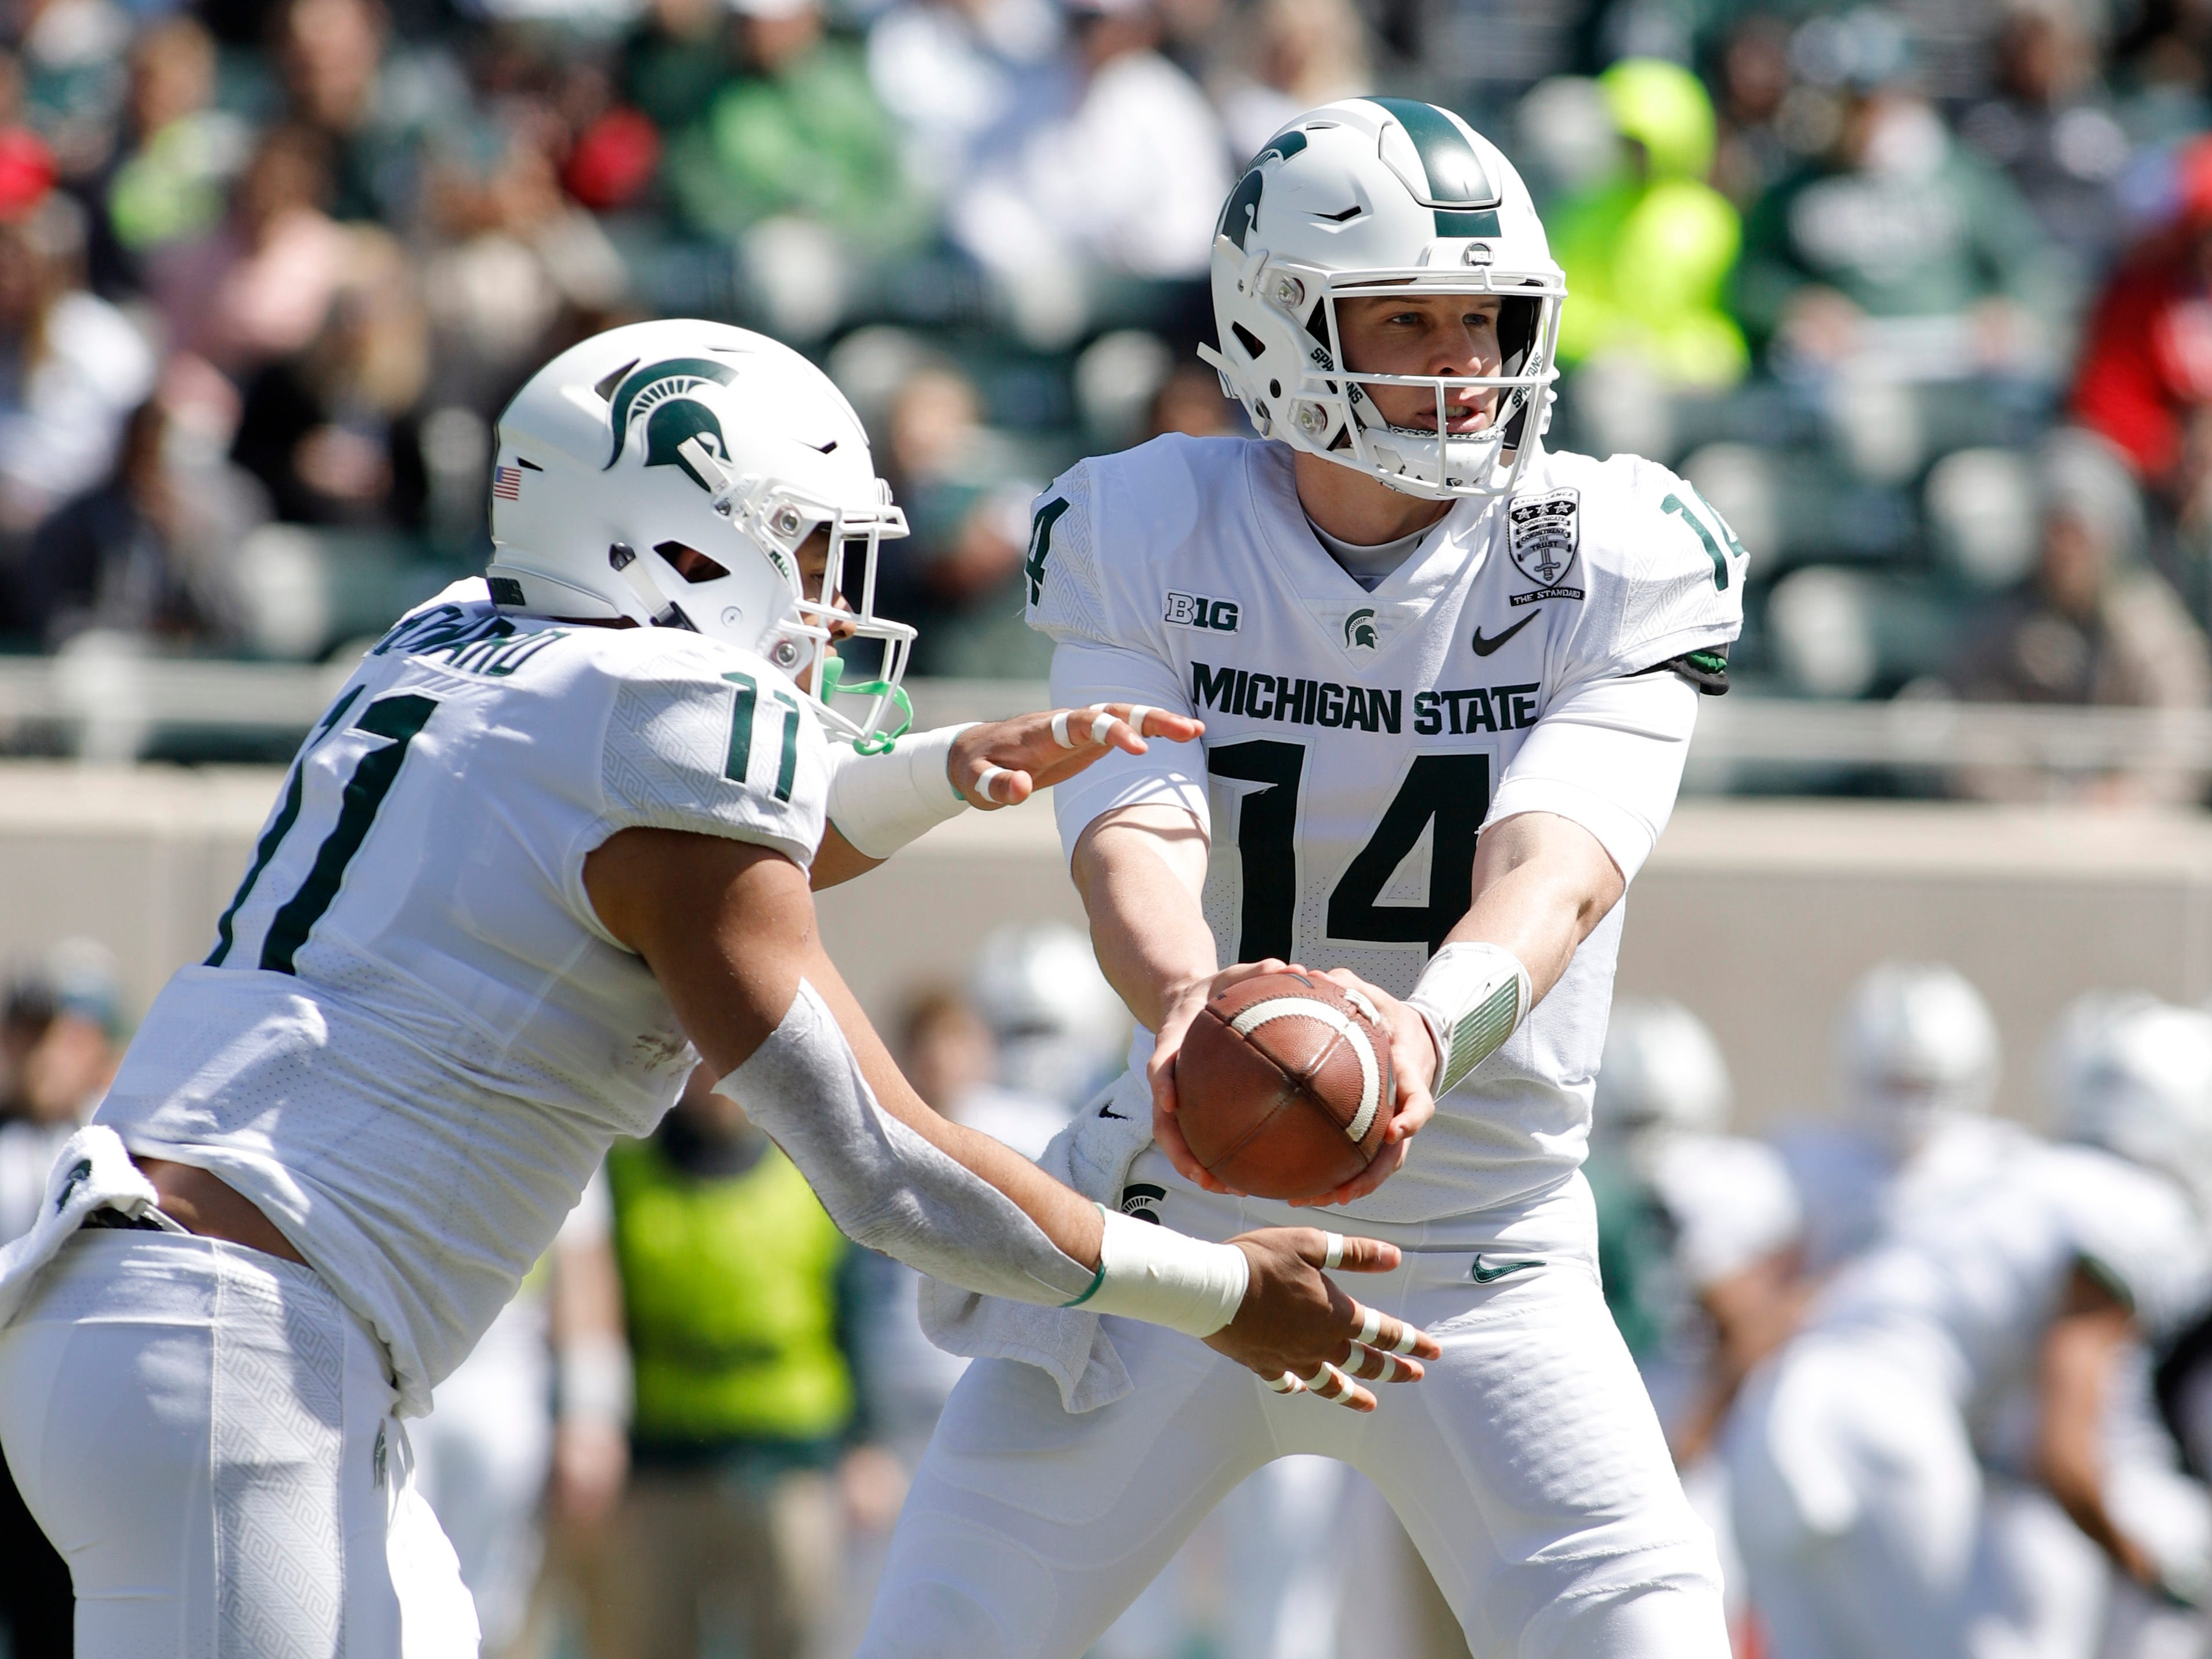 Michigan State quarterback Brian Lewerke, right, hands off to running back Connor Heyward during an NCAA college football spring scrimmage game, Saturday, April 13, 2019, in East Lansing, Mich. (AP Photo/Al Goldis)